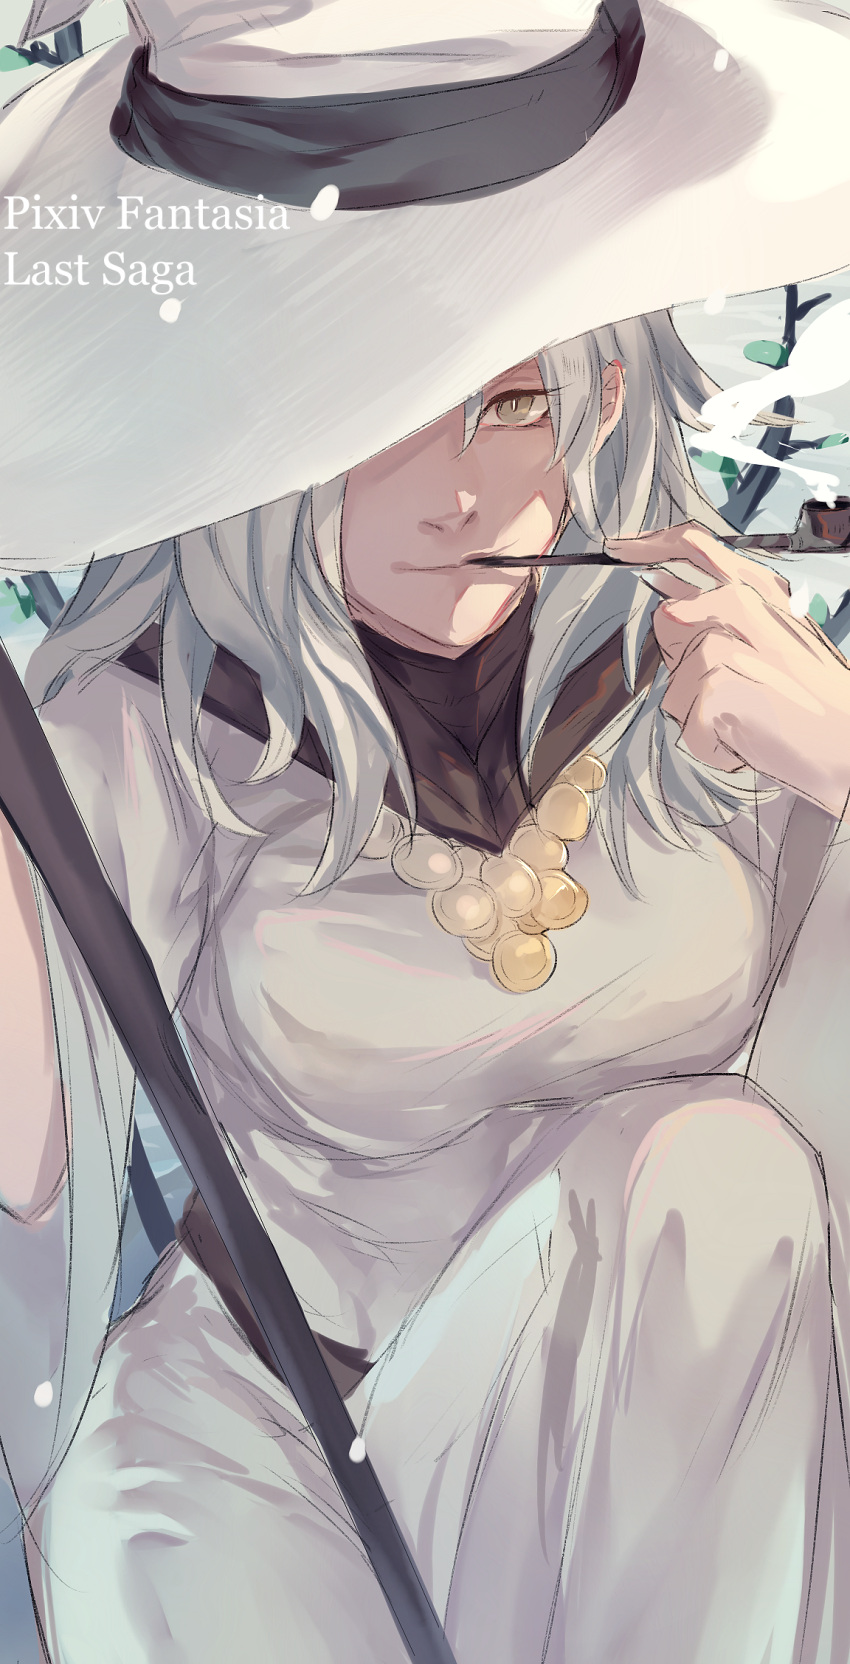 1girl brown_eyes copyright_name hand_up hat highres julia_yit kiseru knee_up long_hair looking_at_viewer miracera_master_of_the_magic_institute one_eye_covered outdoors pipe pixiv_fantasia_last_saga sitting sketch smile smoking staff white_hair white_hat white_robe wizard_hat